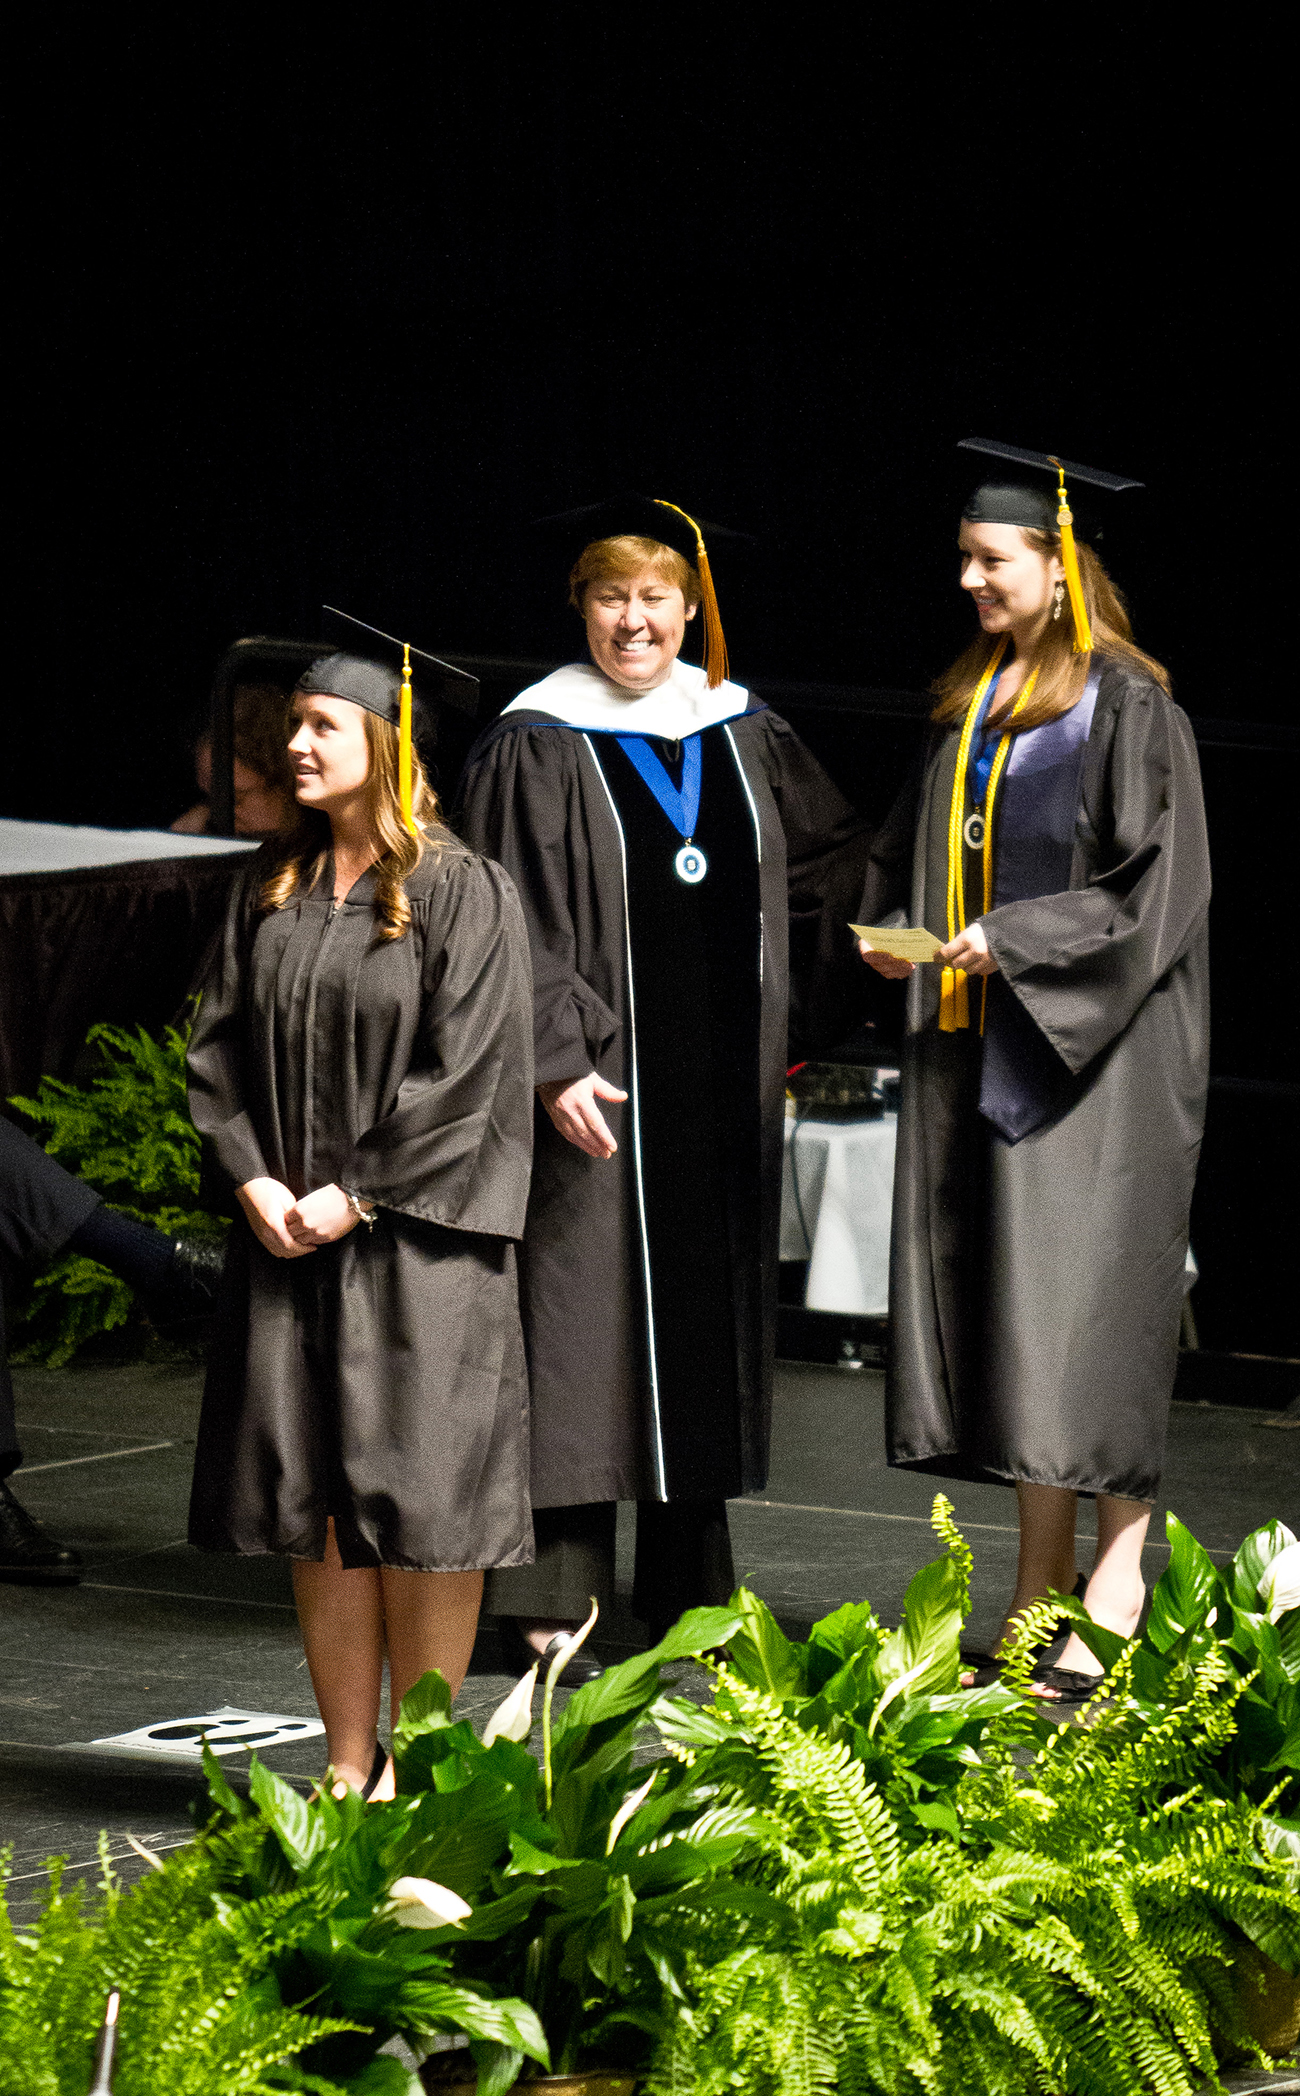 Graduates, wearing cap and gown, walk across a stage to receive their diplomas.